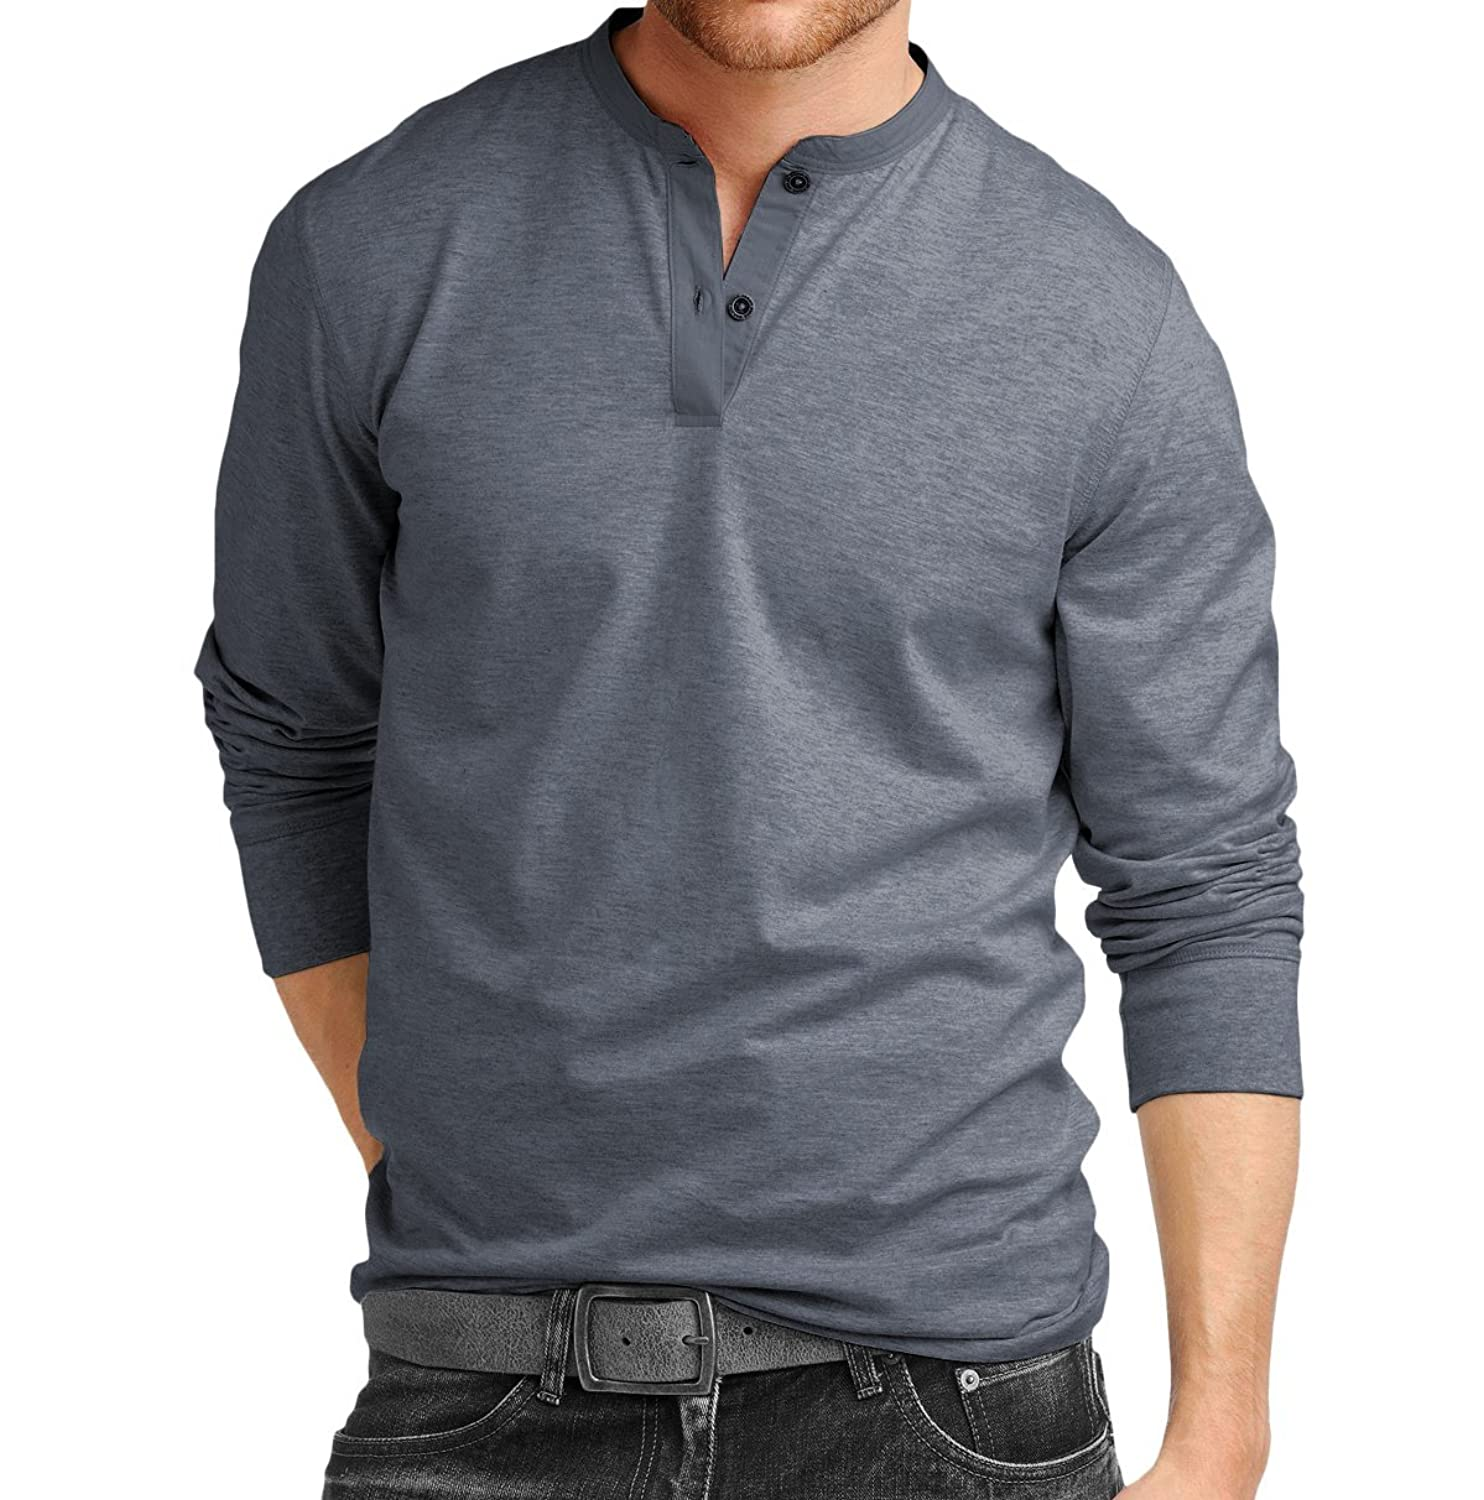 Fanideaz Men's Cotton Henley Full sleeve T Shirts: Amazon.in ...